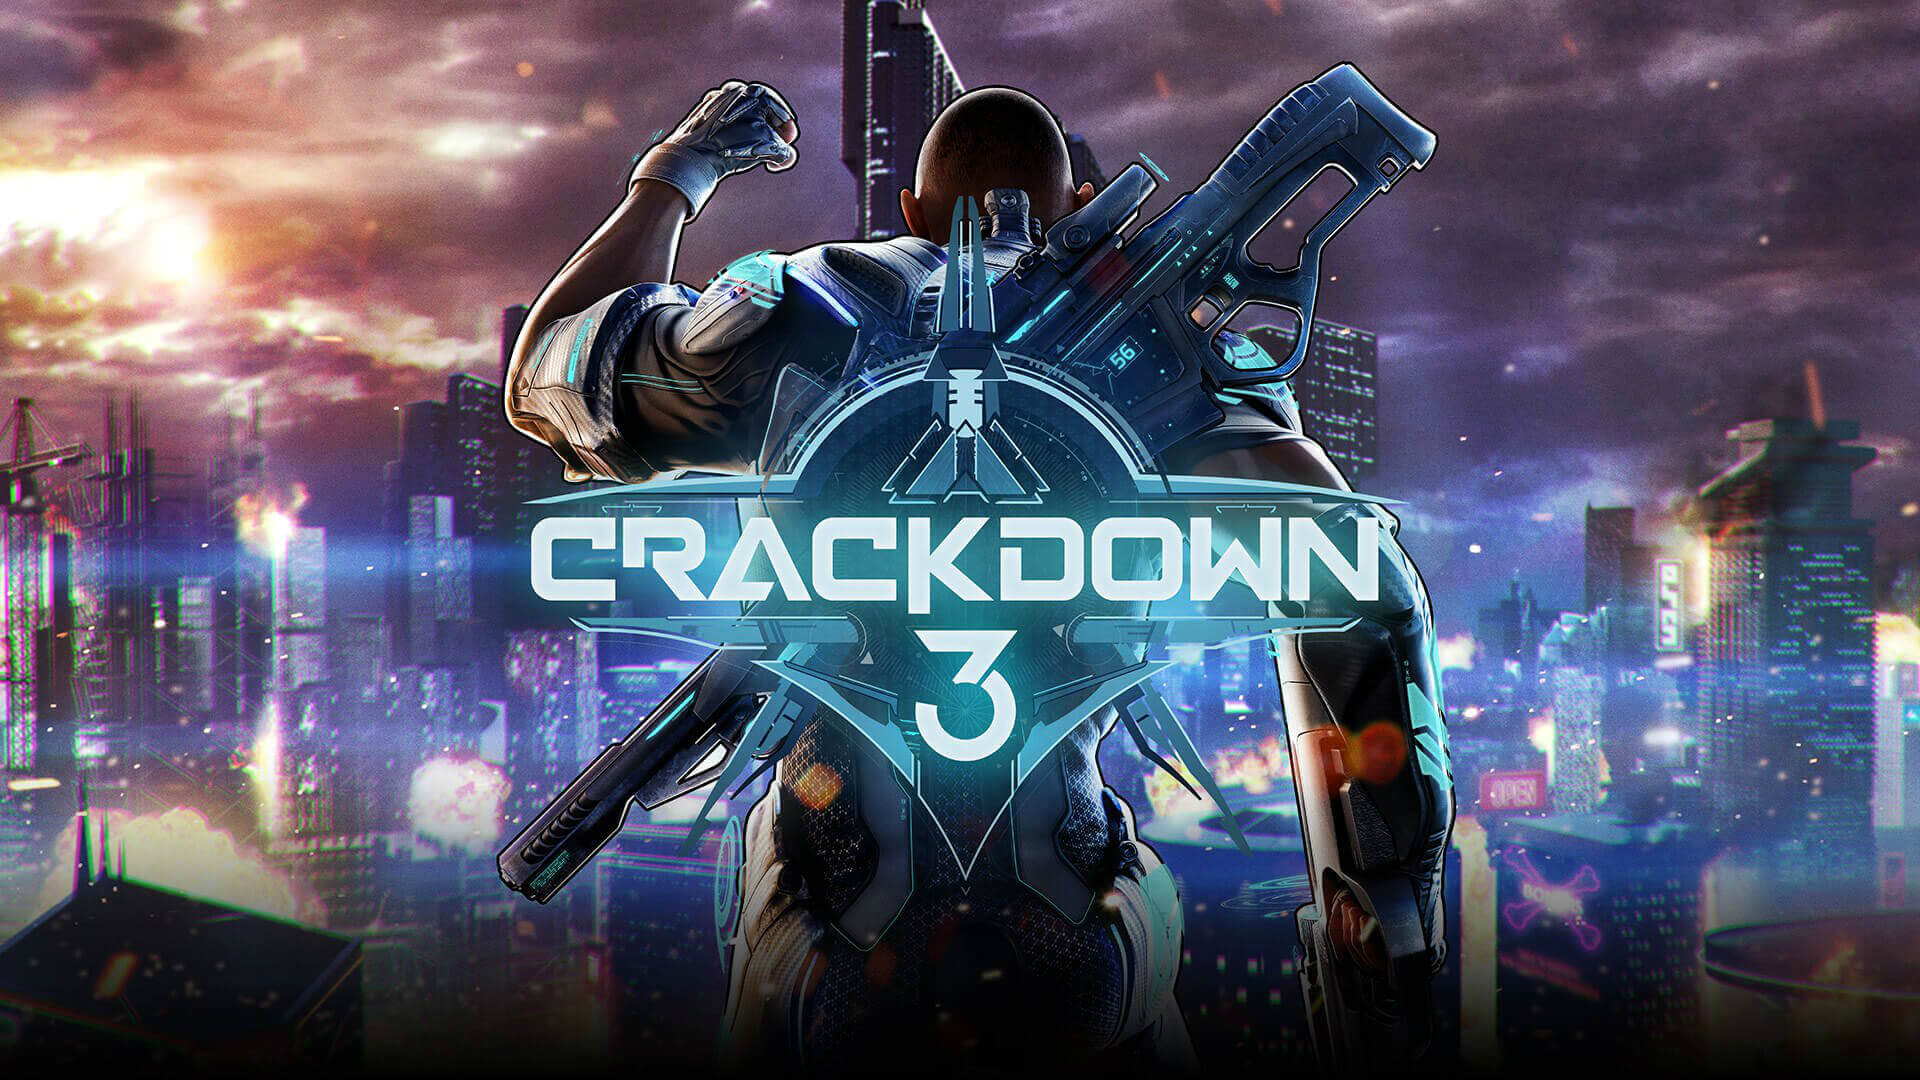 Rumor: Crackdown 3 Delayed to 2019